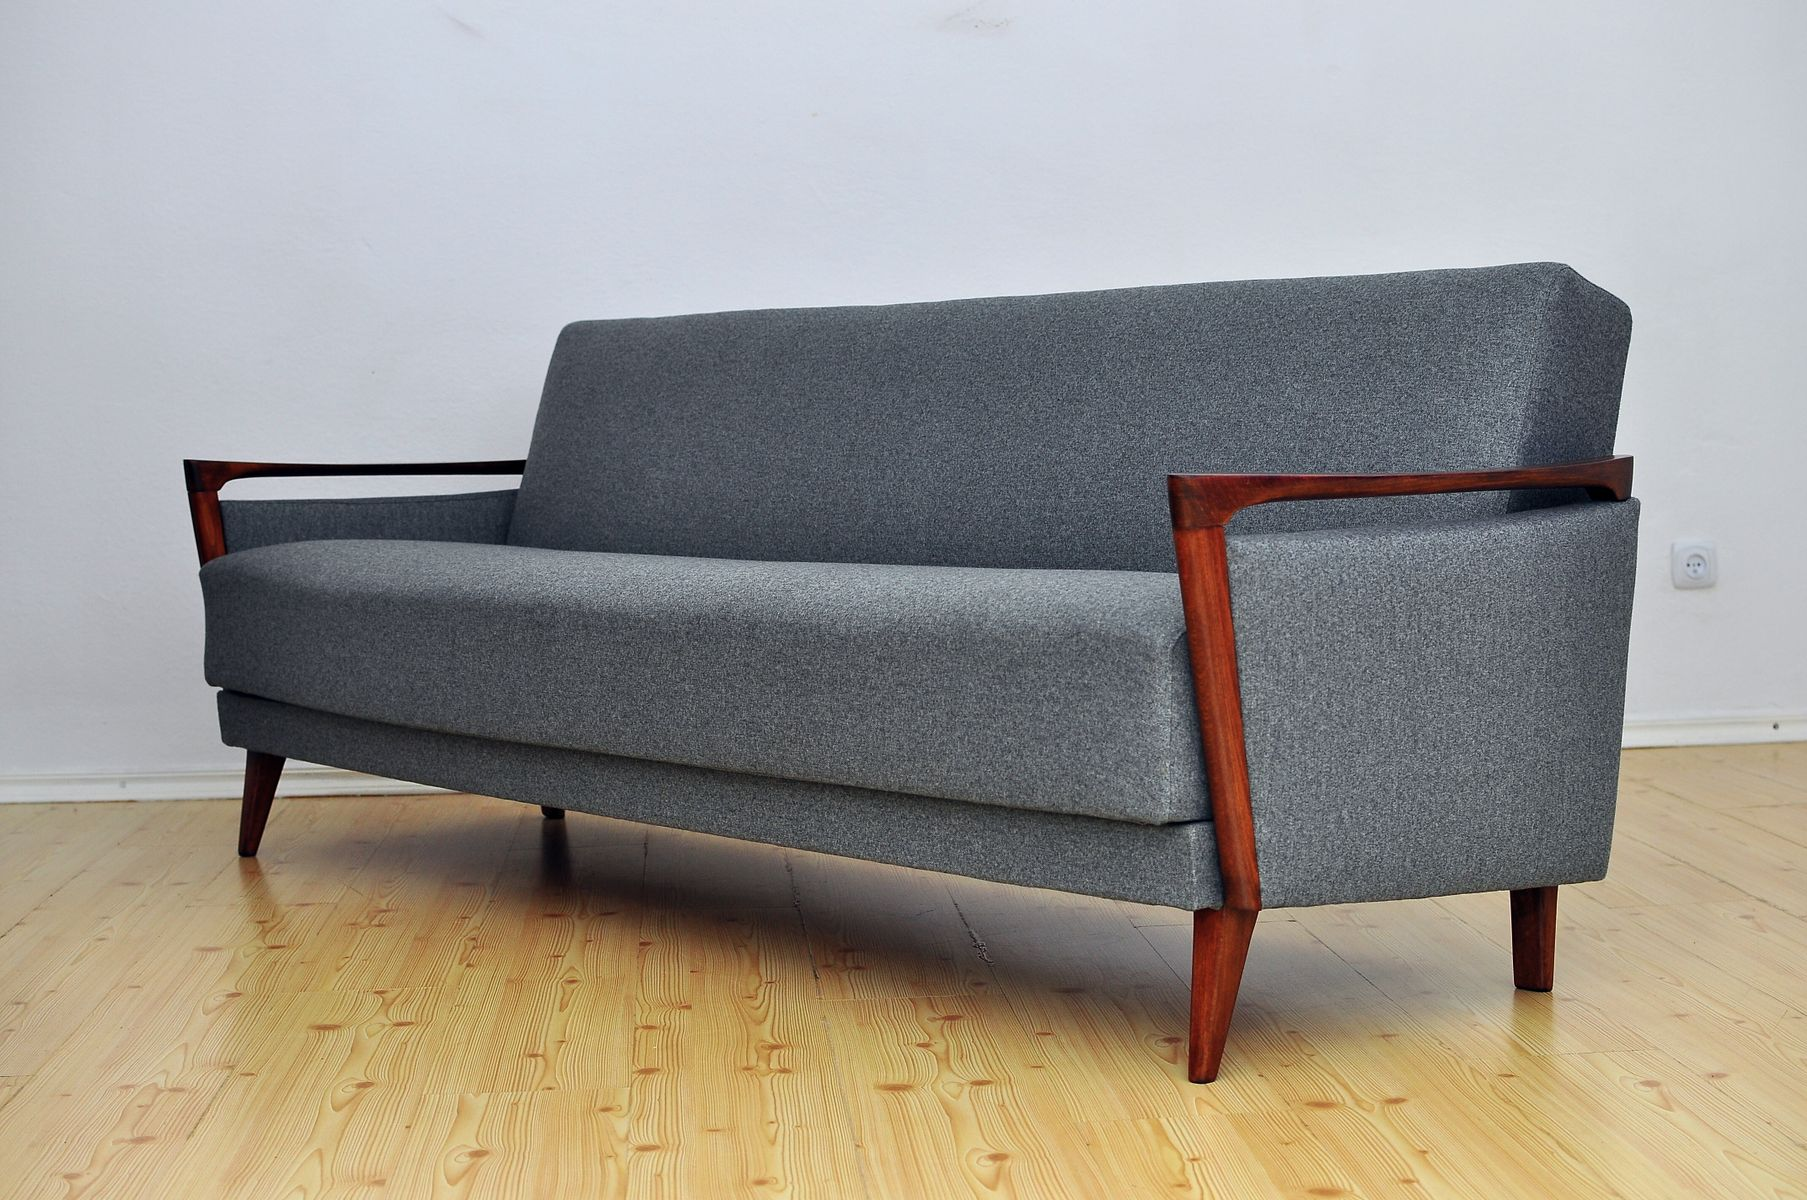 Marvelous Mid Century Sofa, 1960s For Sale At Pamono